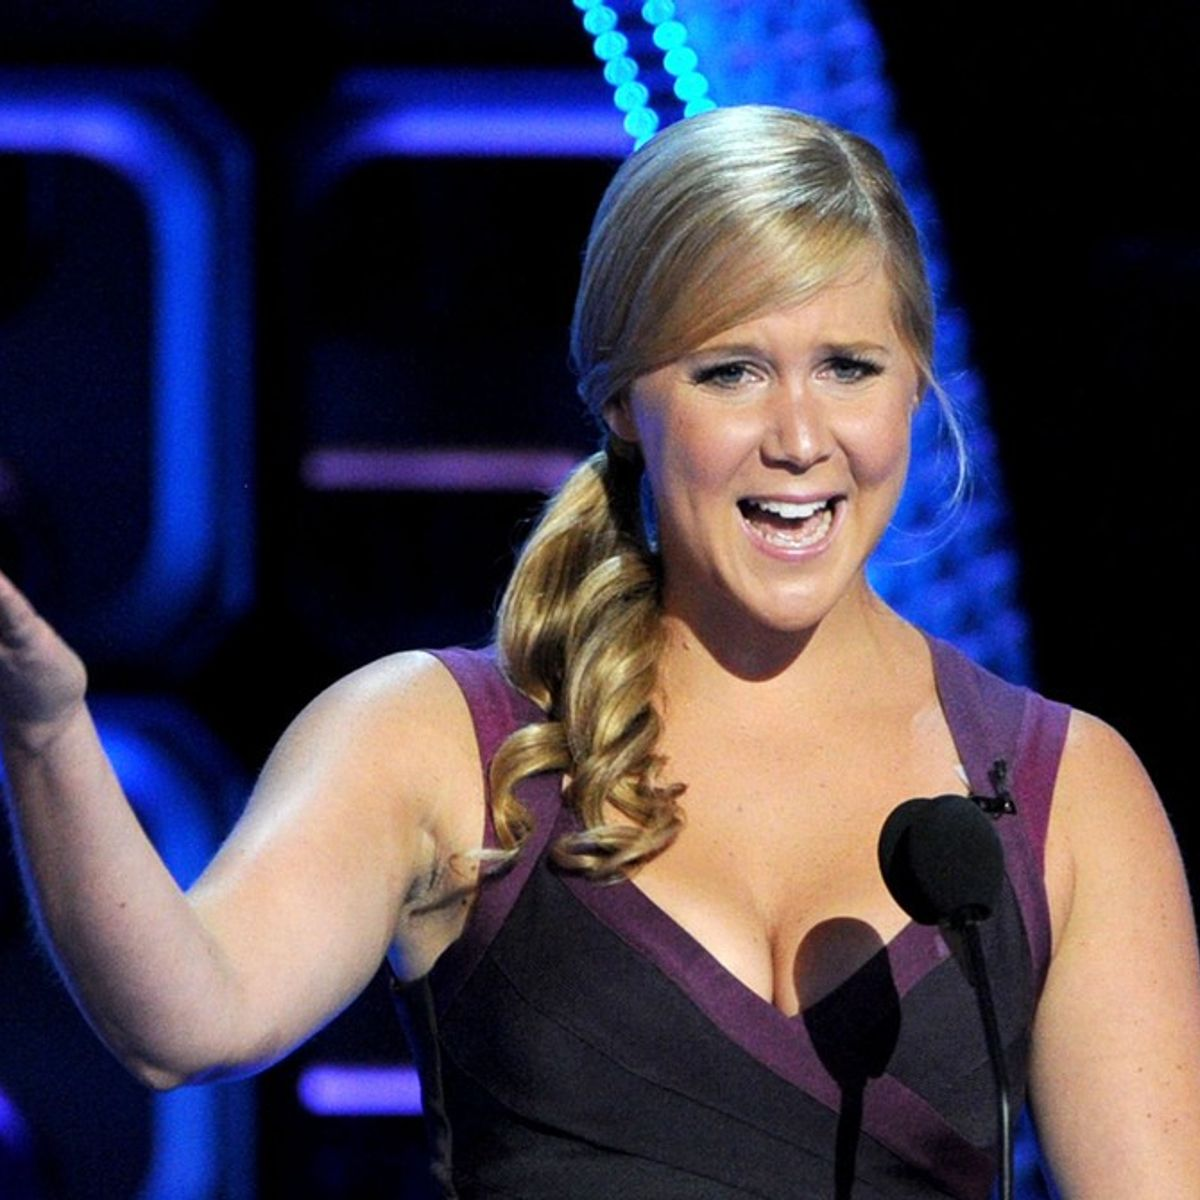 Amy Schumer Sex Video amy schumer: women comedians will never be treated equally